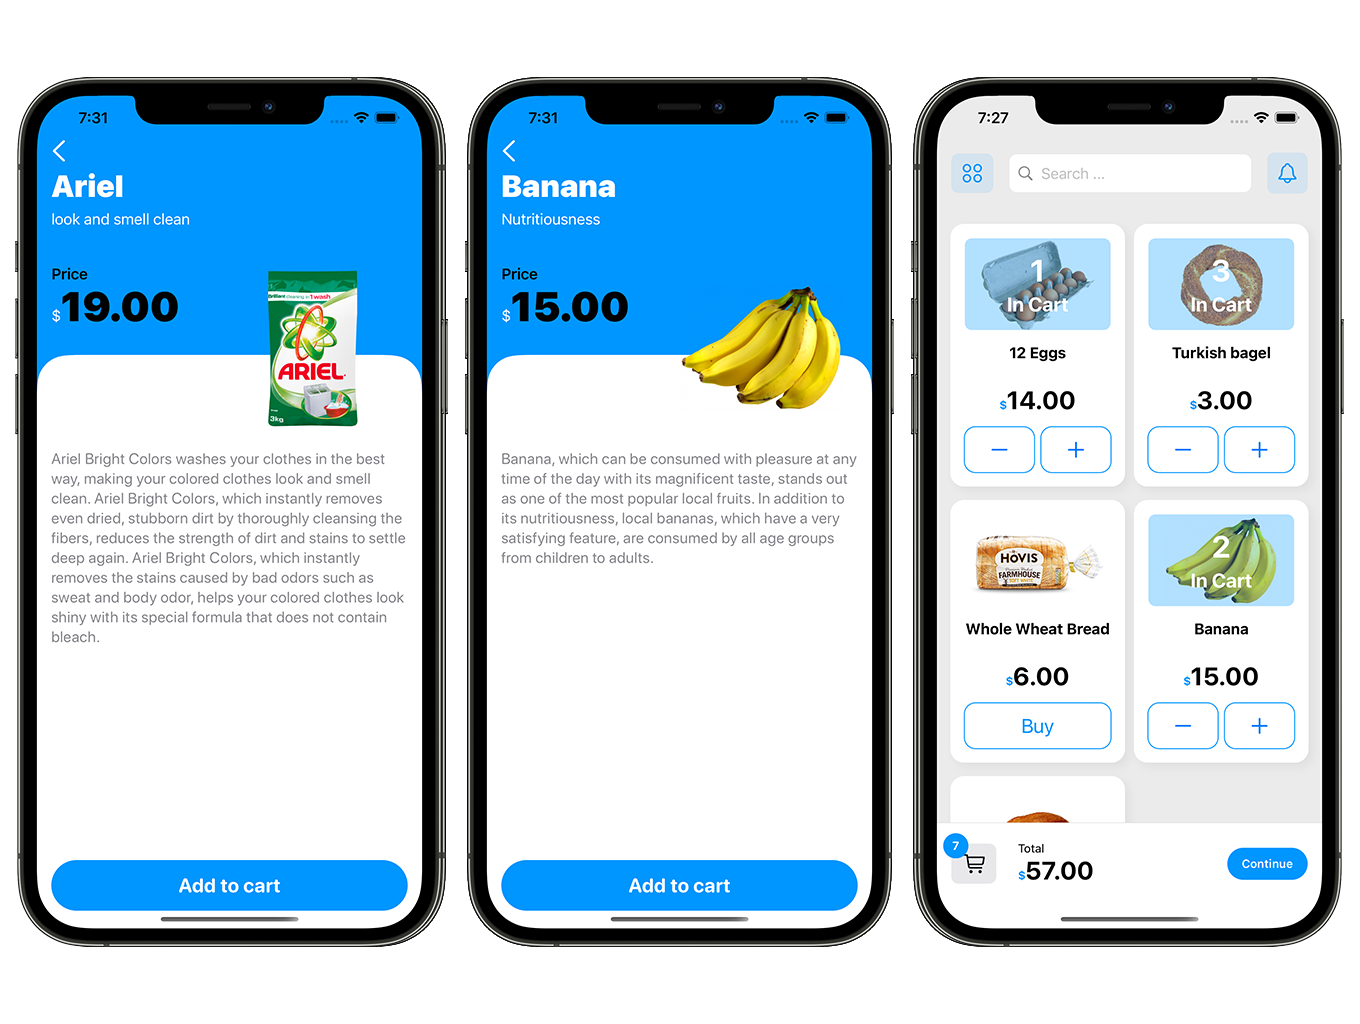 SwiftUI Grocery App | Woocommerce Full iOS Application - 5